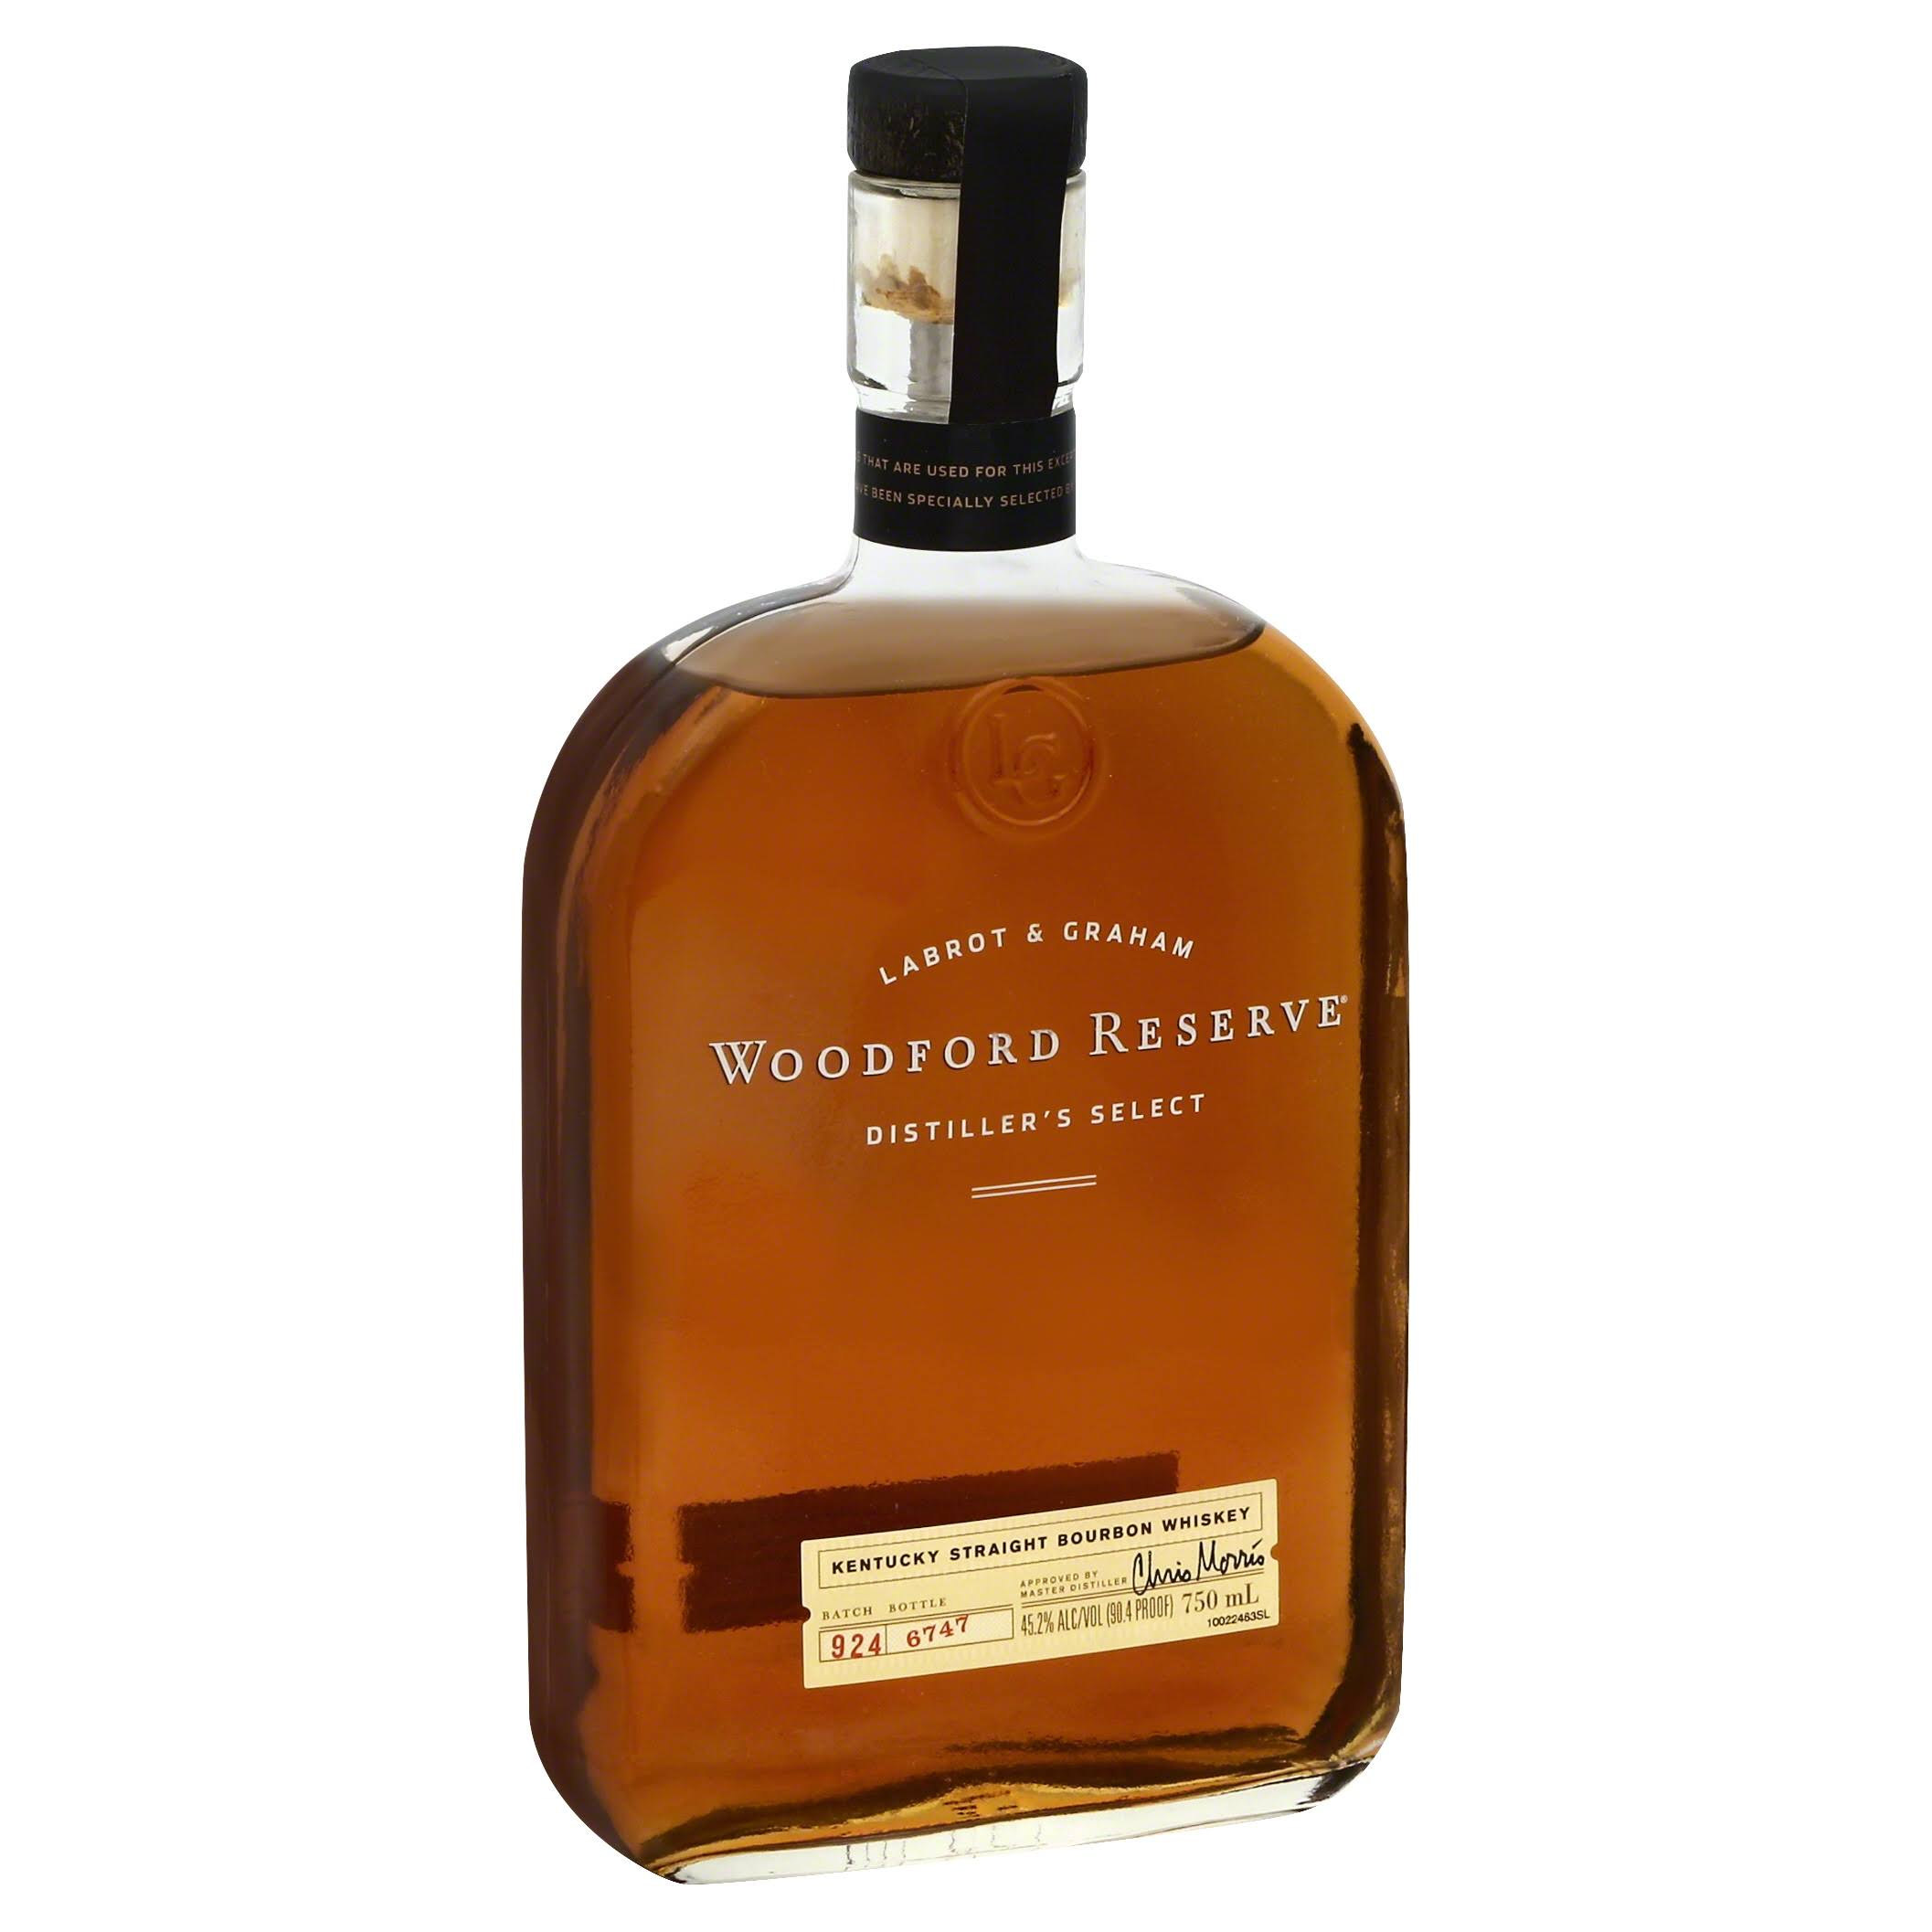 Woodford Reserve Bourbon Whiskey, Distiller's Select - 750 ml